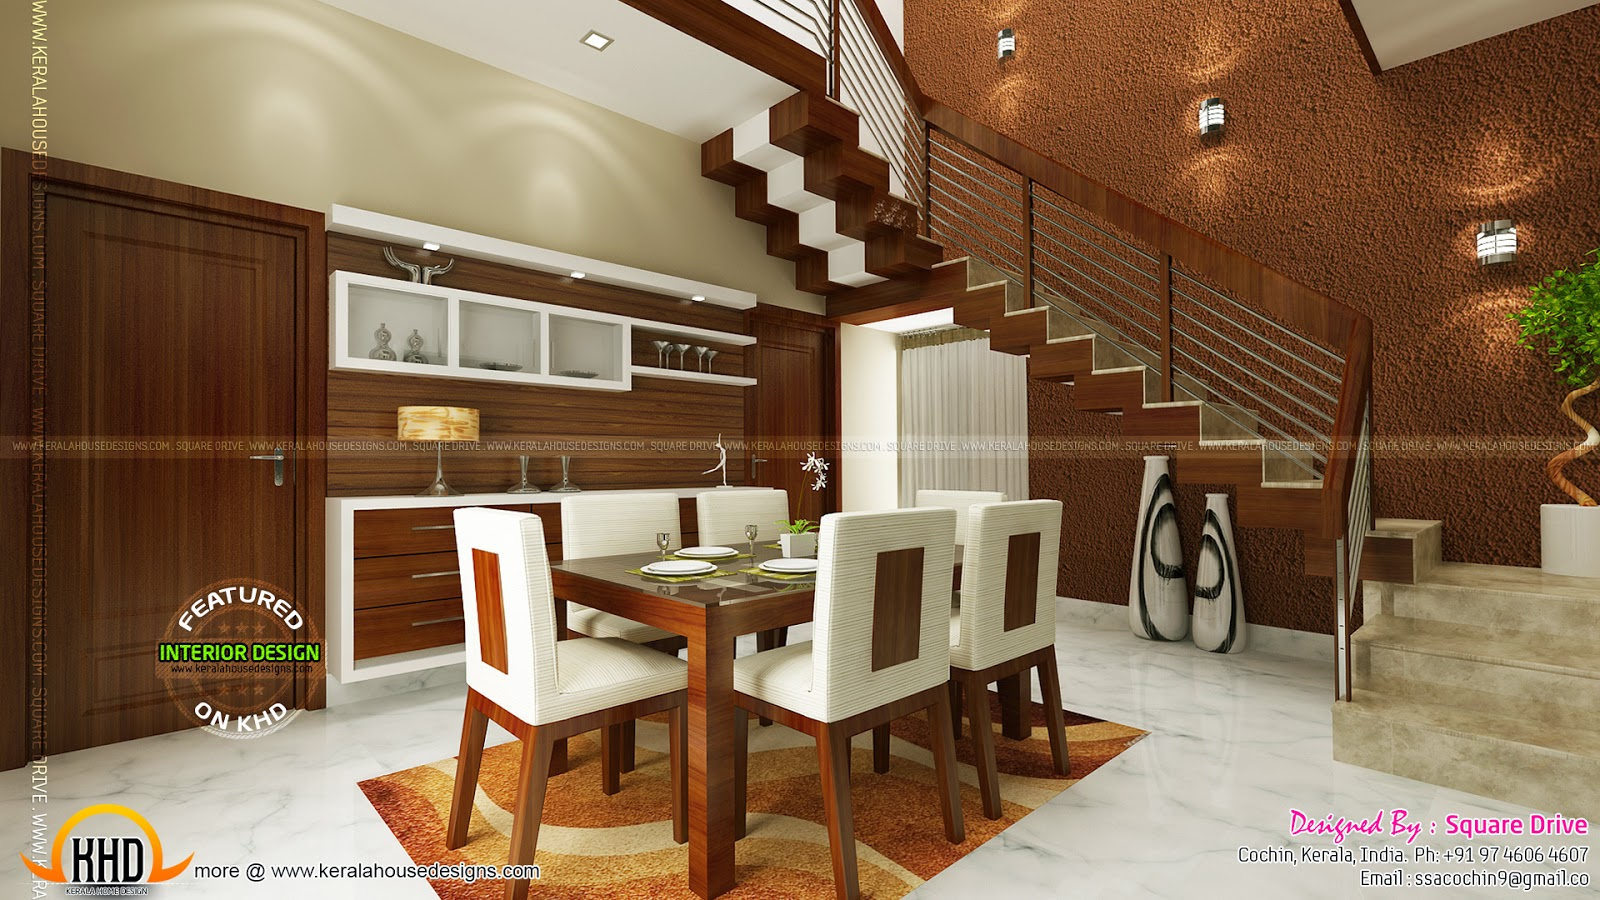 Cochin interior design kerala home design and floor plans for Dining room ideas kerala